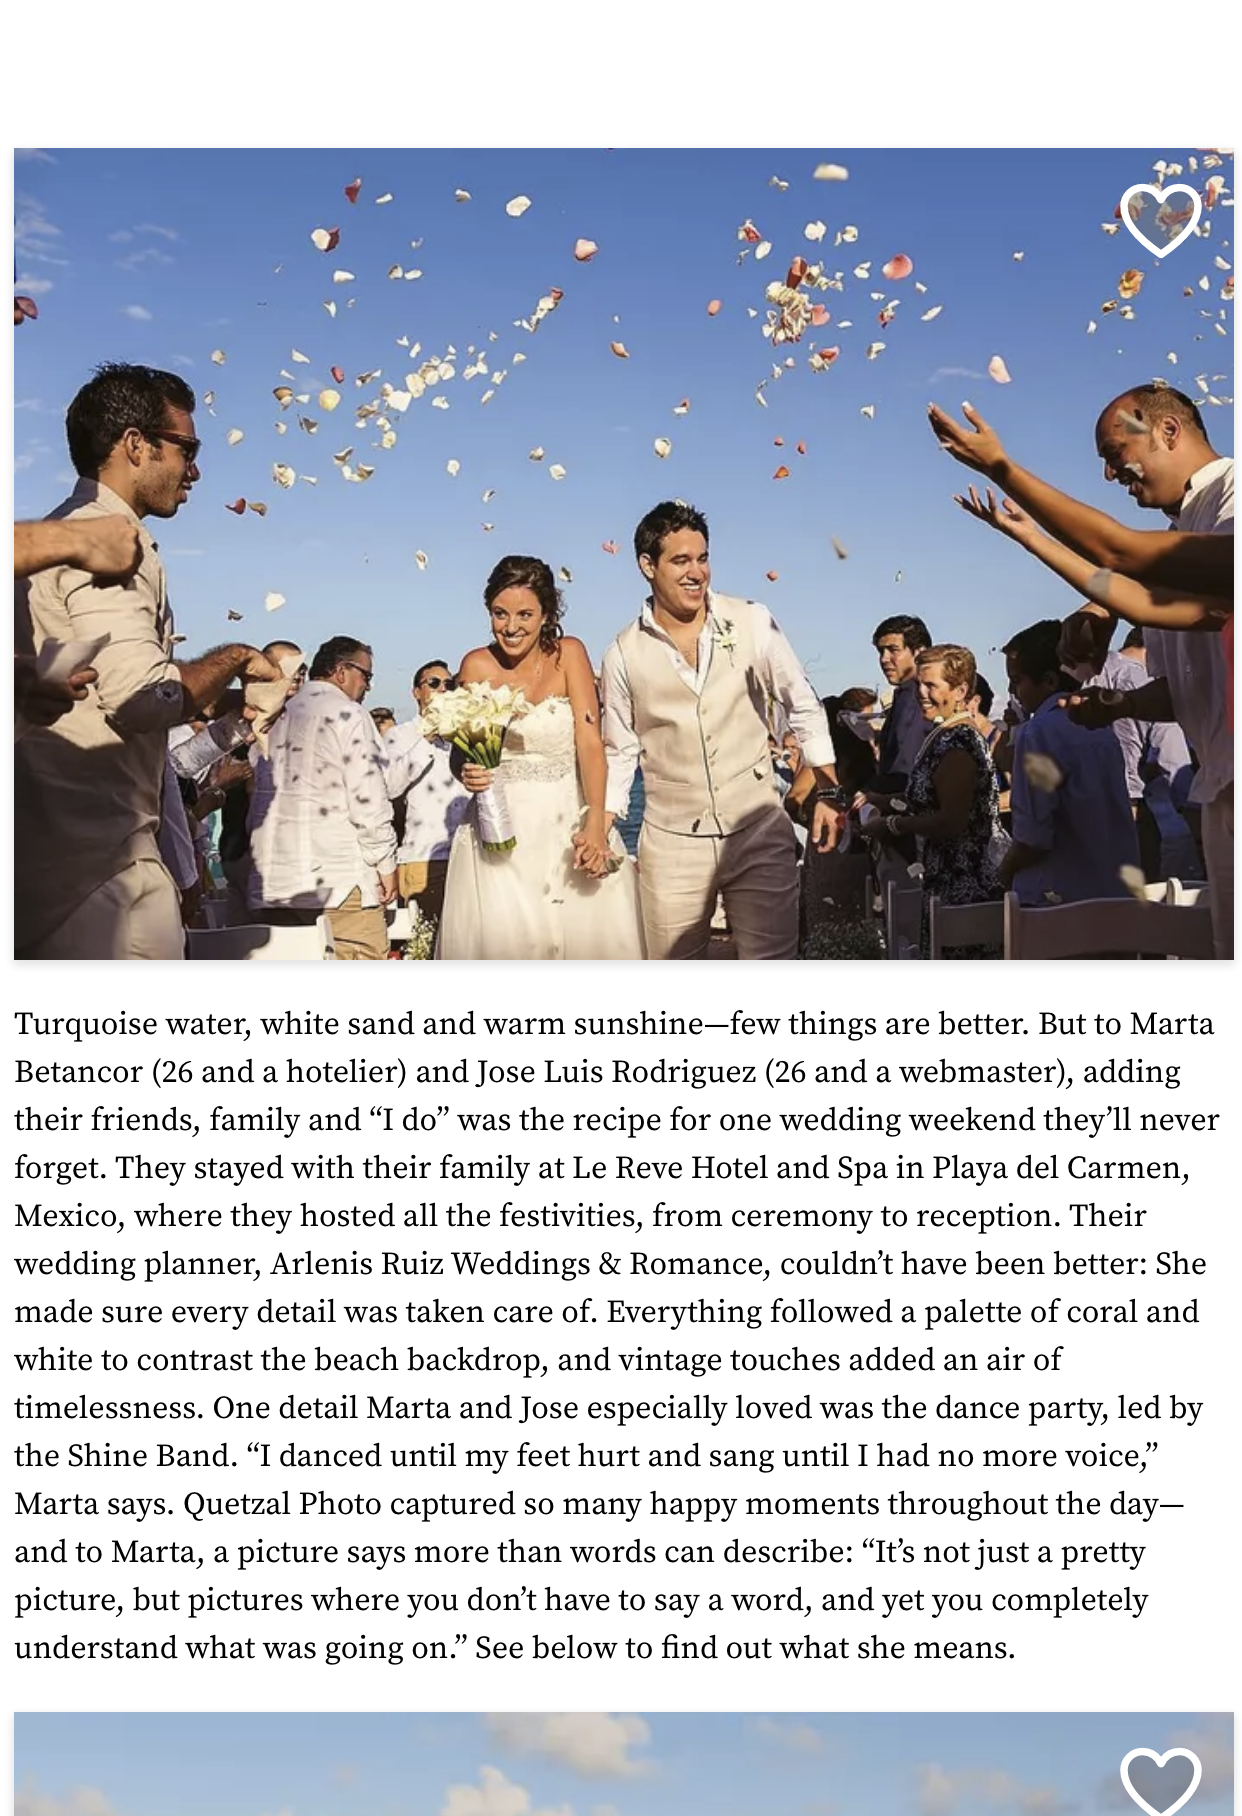 A Romantic Beach Wedding at Le Reve Hotel and Spa in Playa del Carmen, Mexico